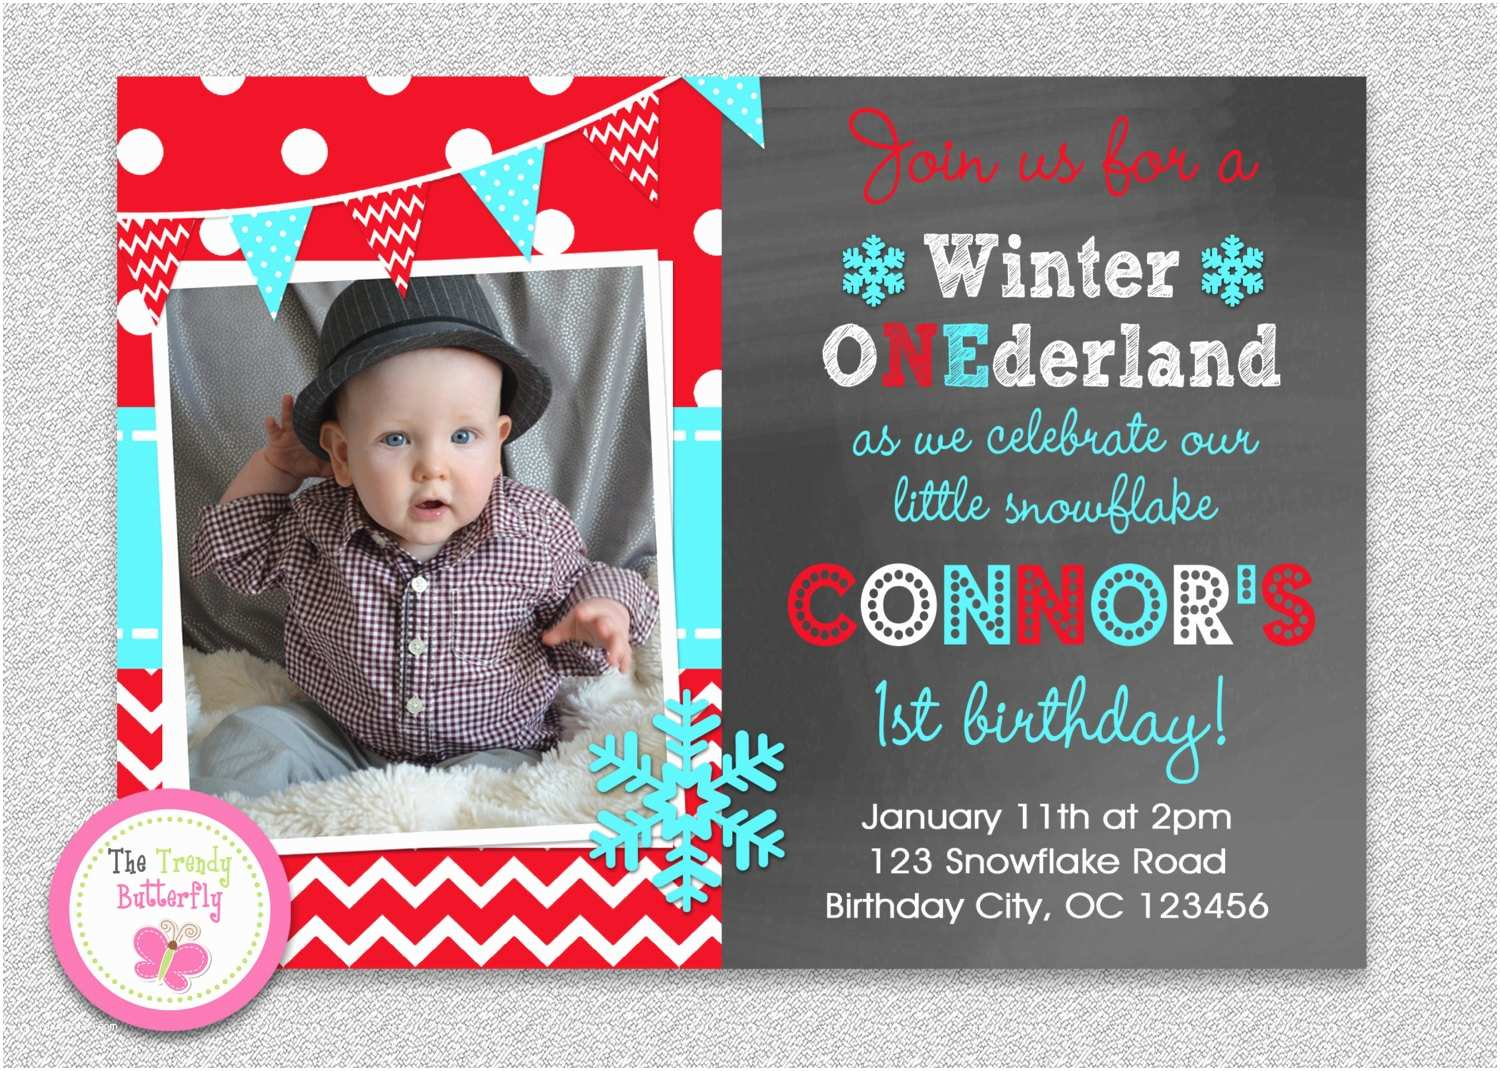 Winter Party Invitations Winter Wonderland Invitation Snowflake Invitation Birthday